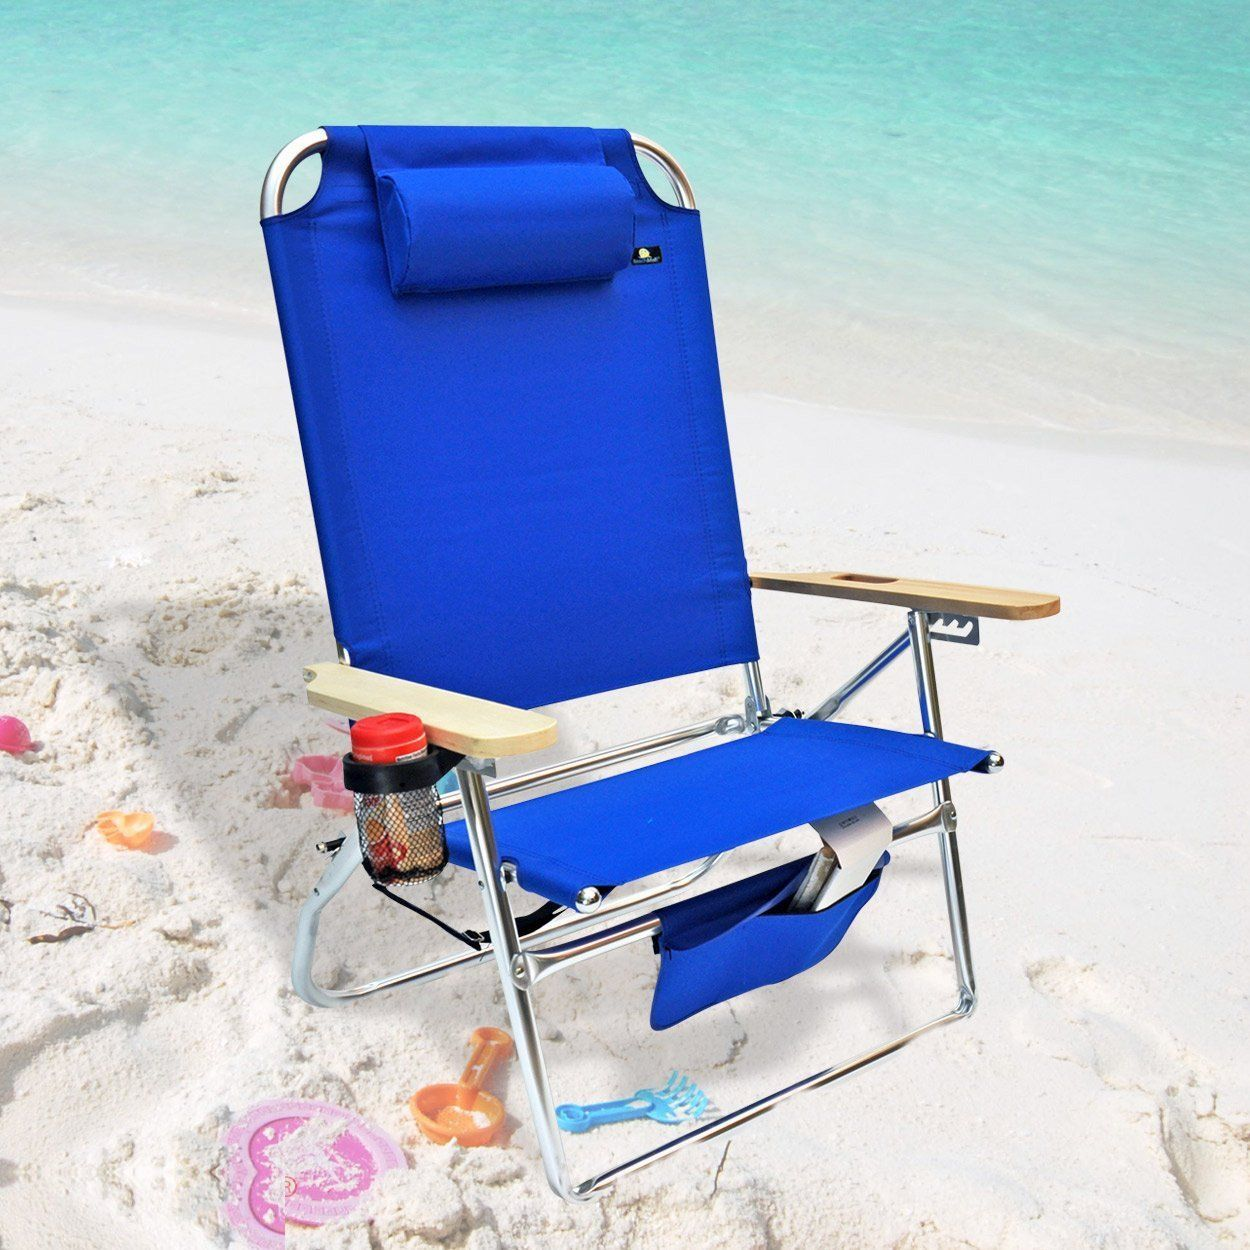 Charmant Extra Large   High Seat Heavy Duty 4 Position Beach Chair W/ Drink Holder  *** Wow! I Love This. Check It Out Now! : Camping Furniture